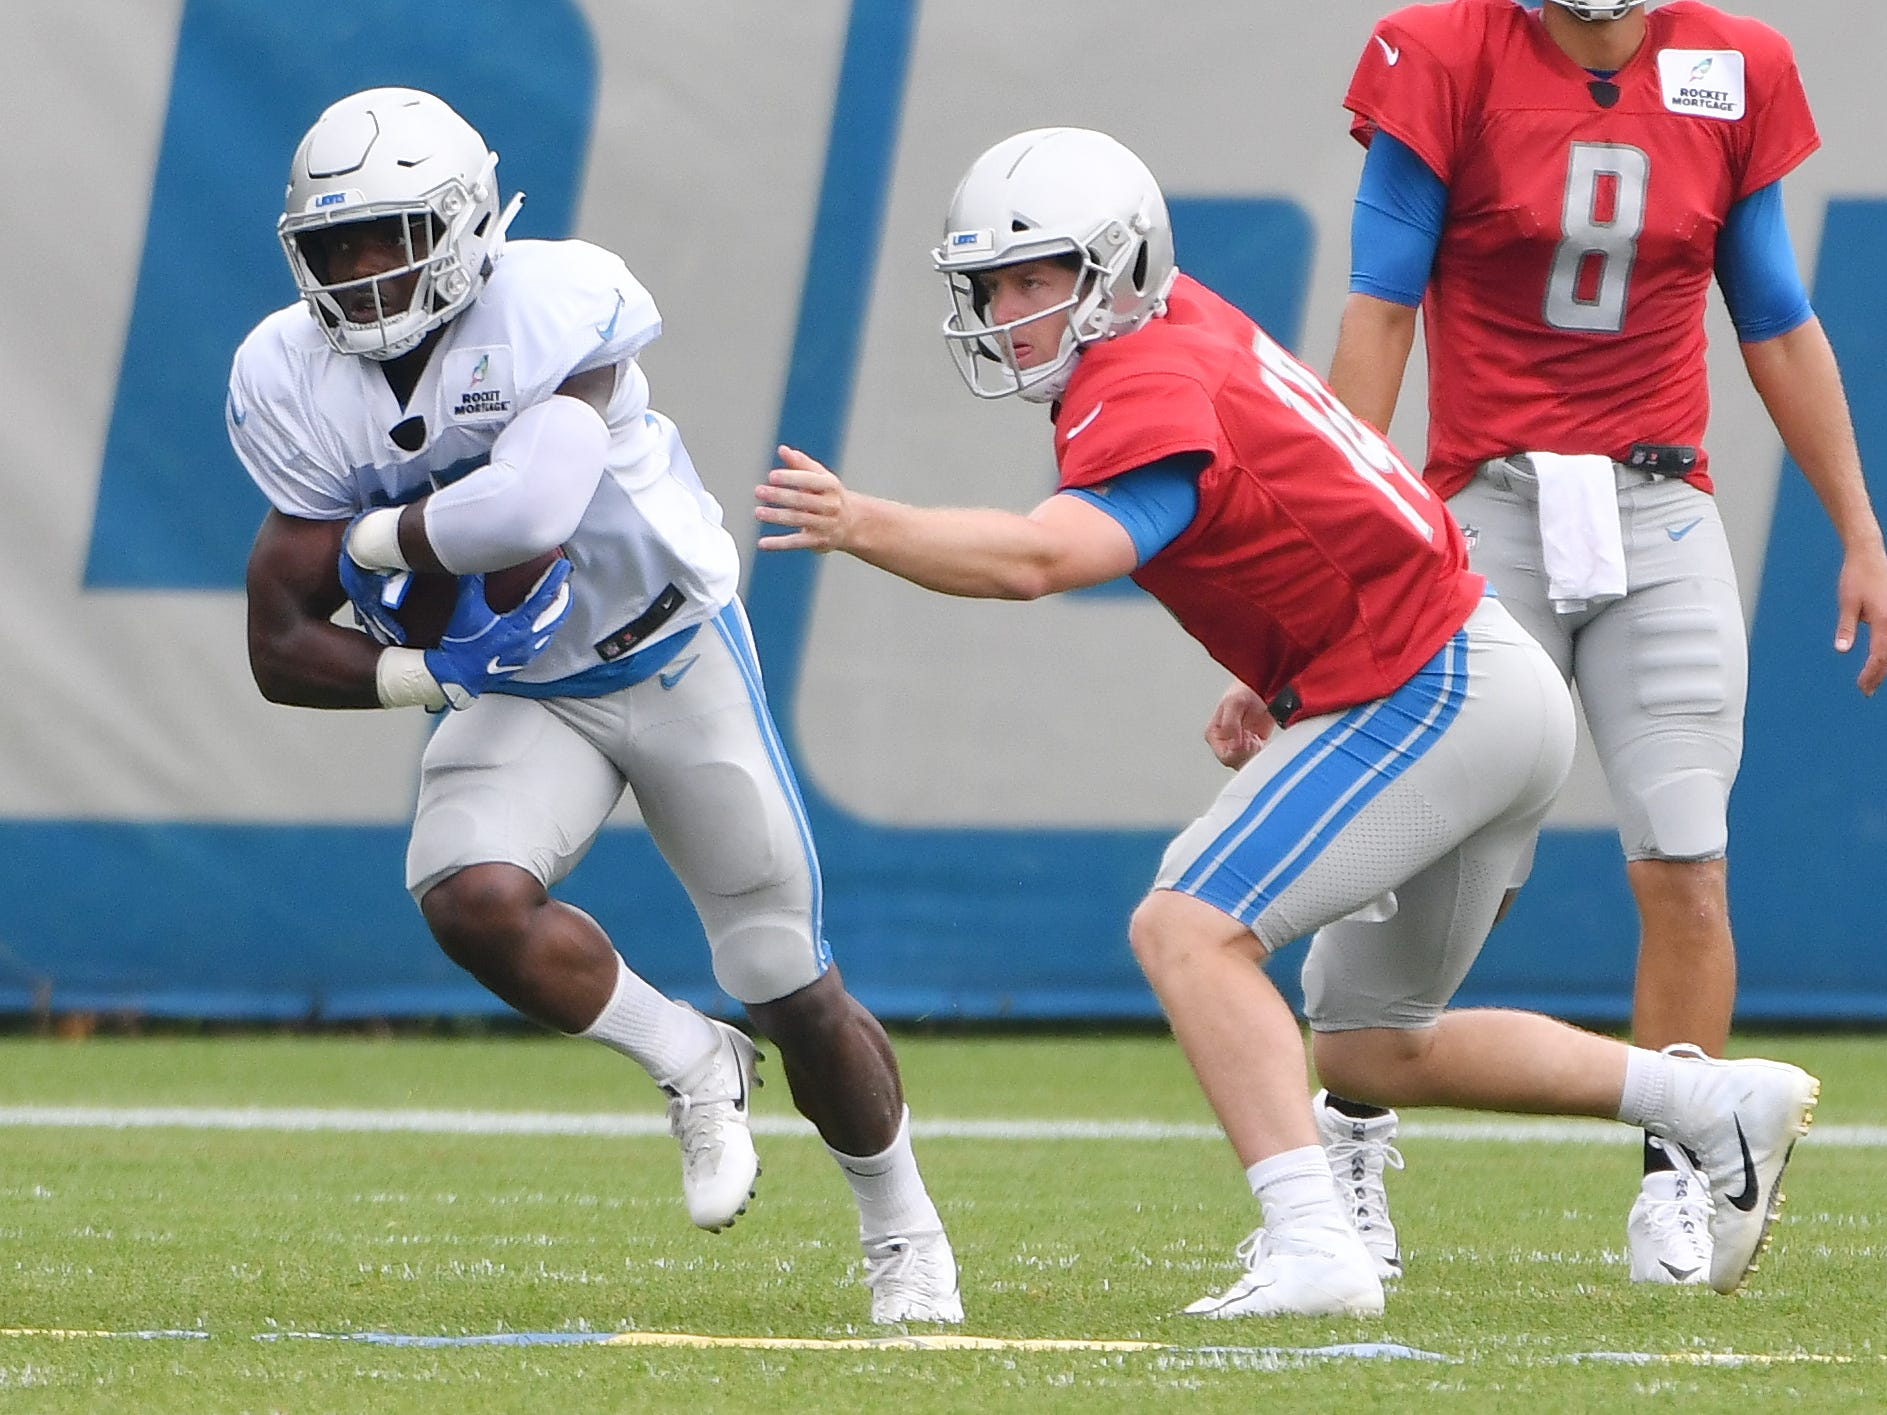 Lions running back Theo Riddick takes the handoff from quarterback Jake Rudock.